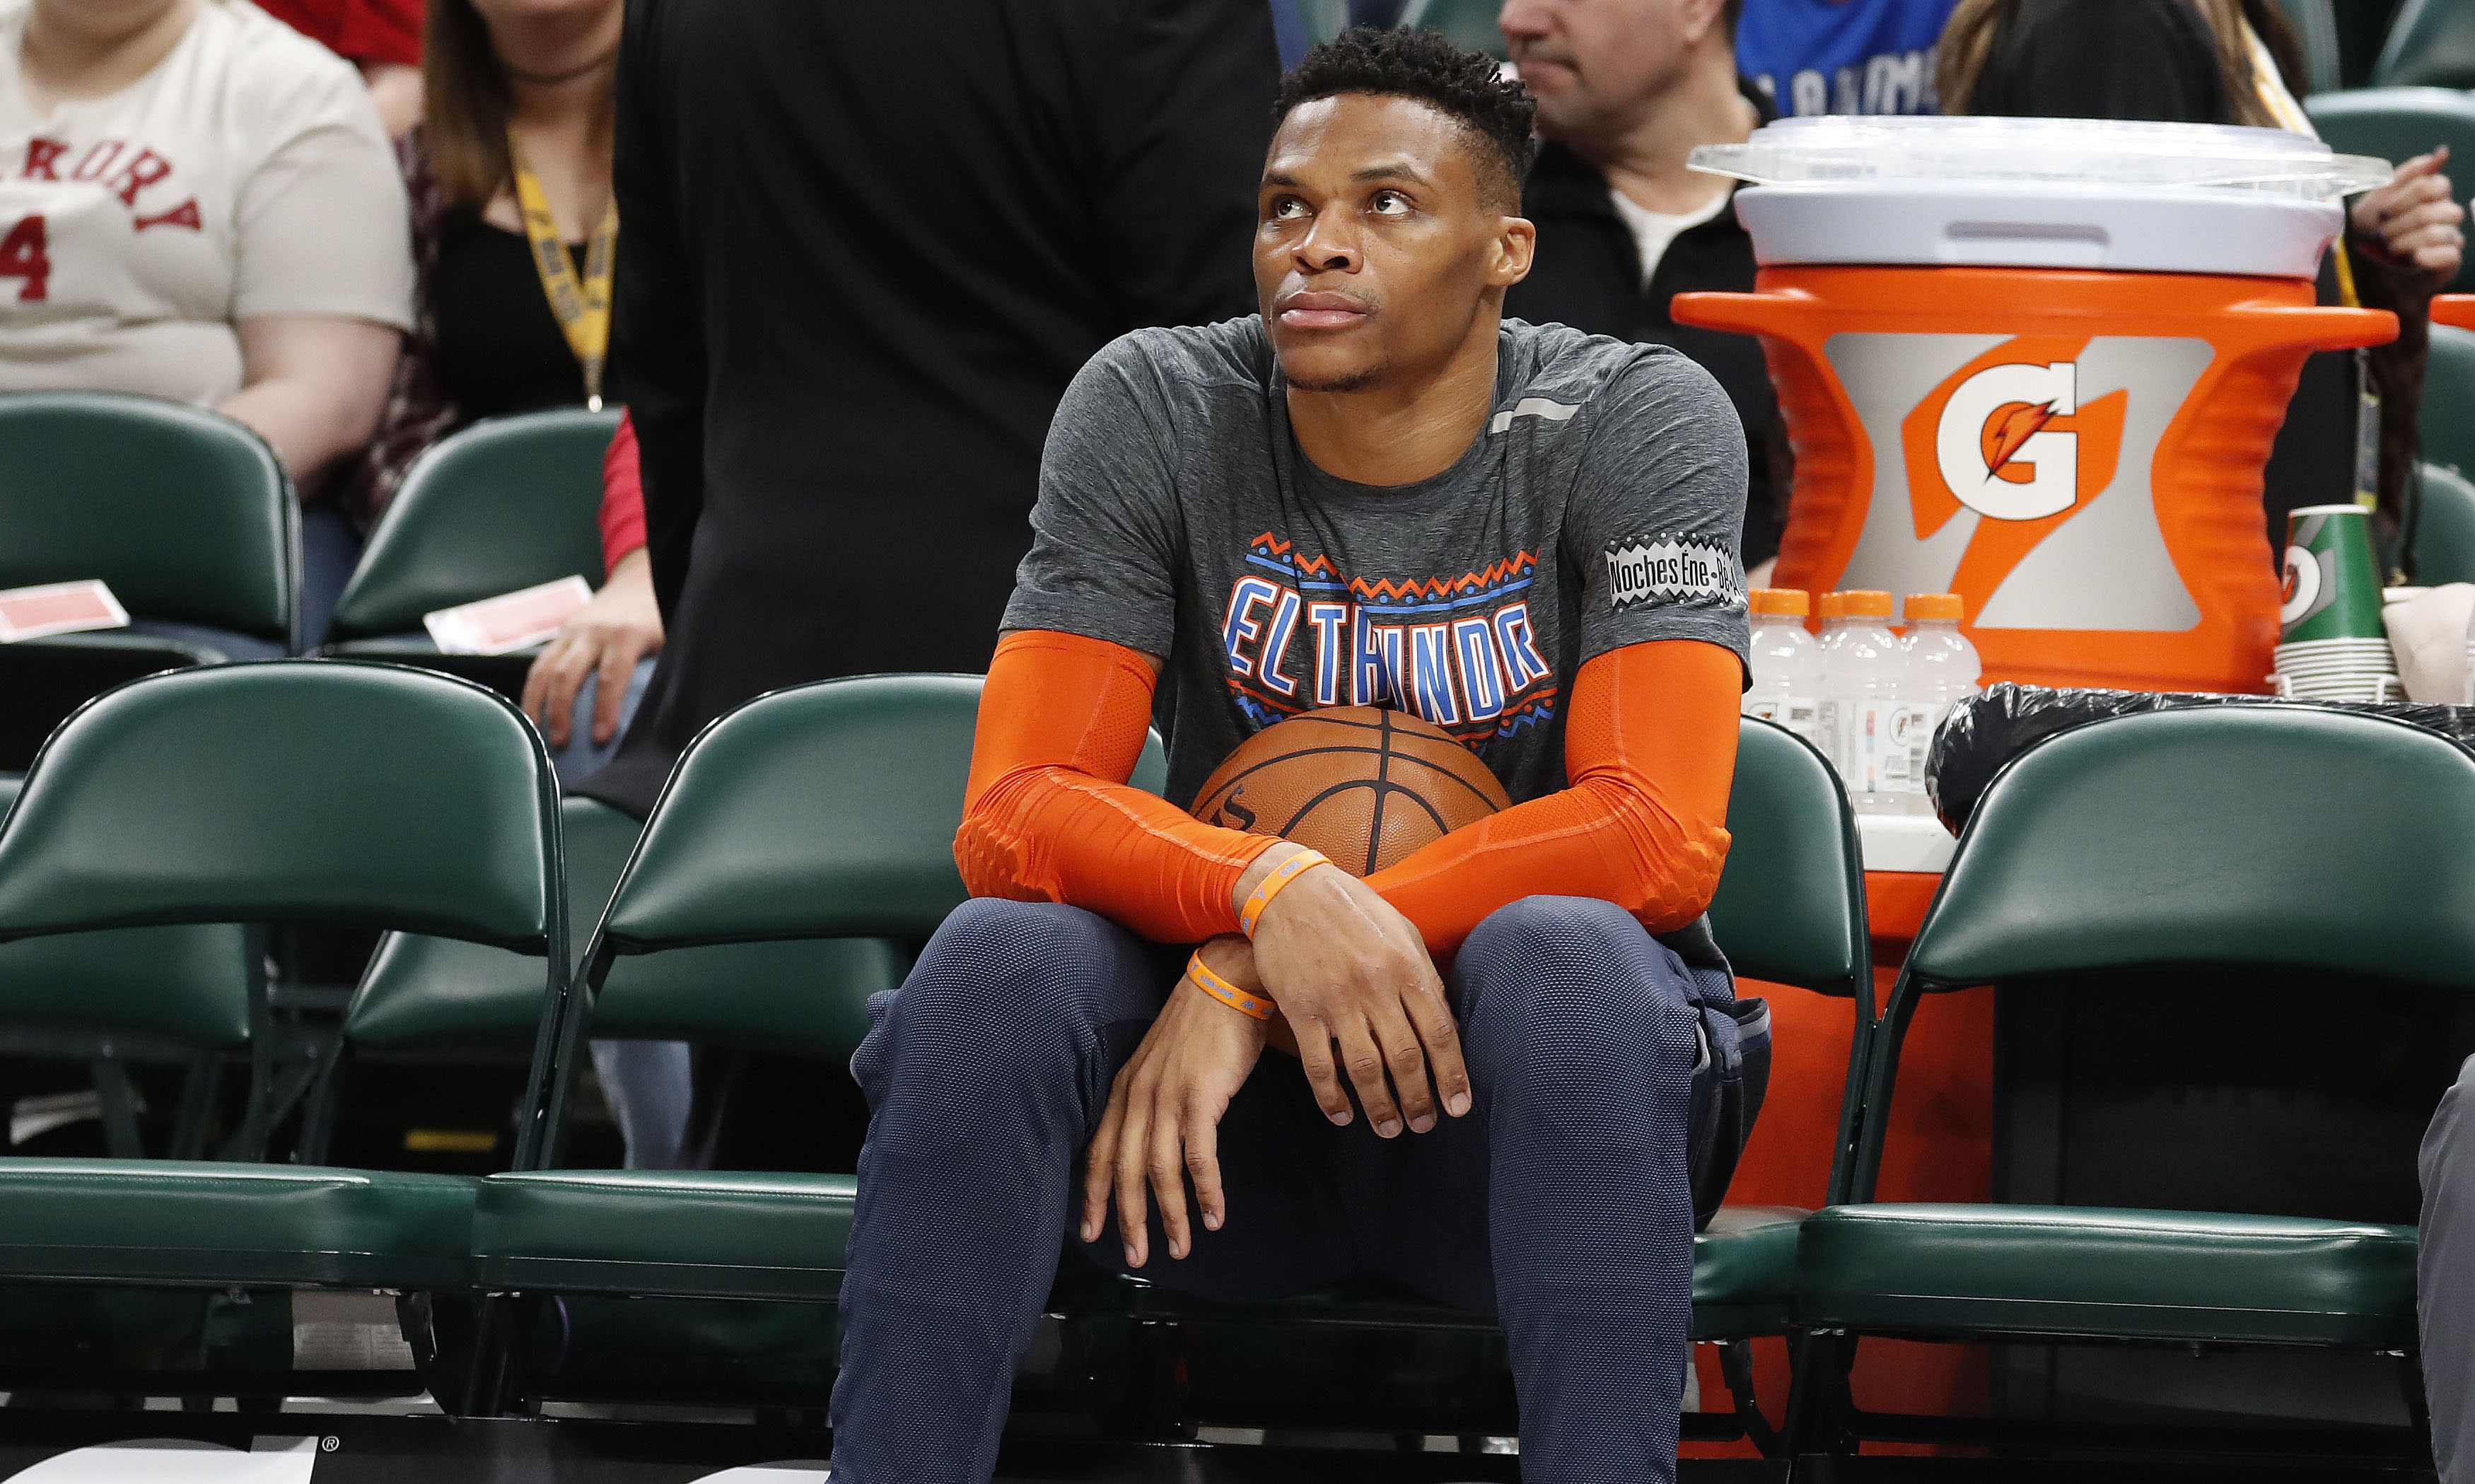 Red Sox helped Jazz handle Russell Westbrook altercation with fan